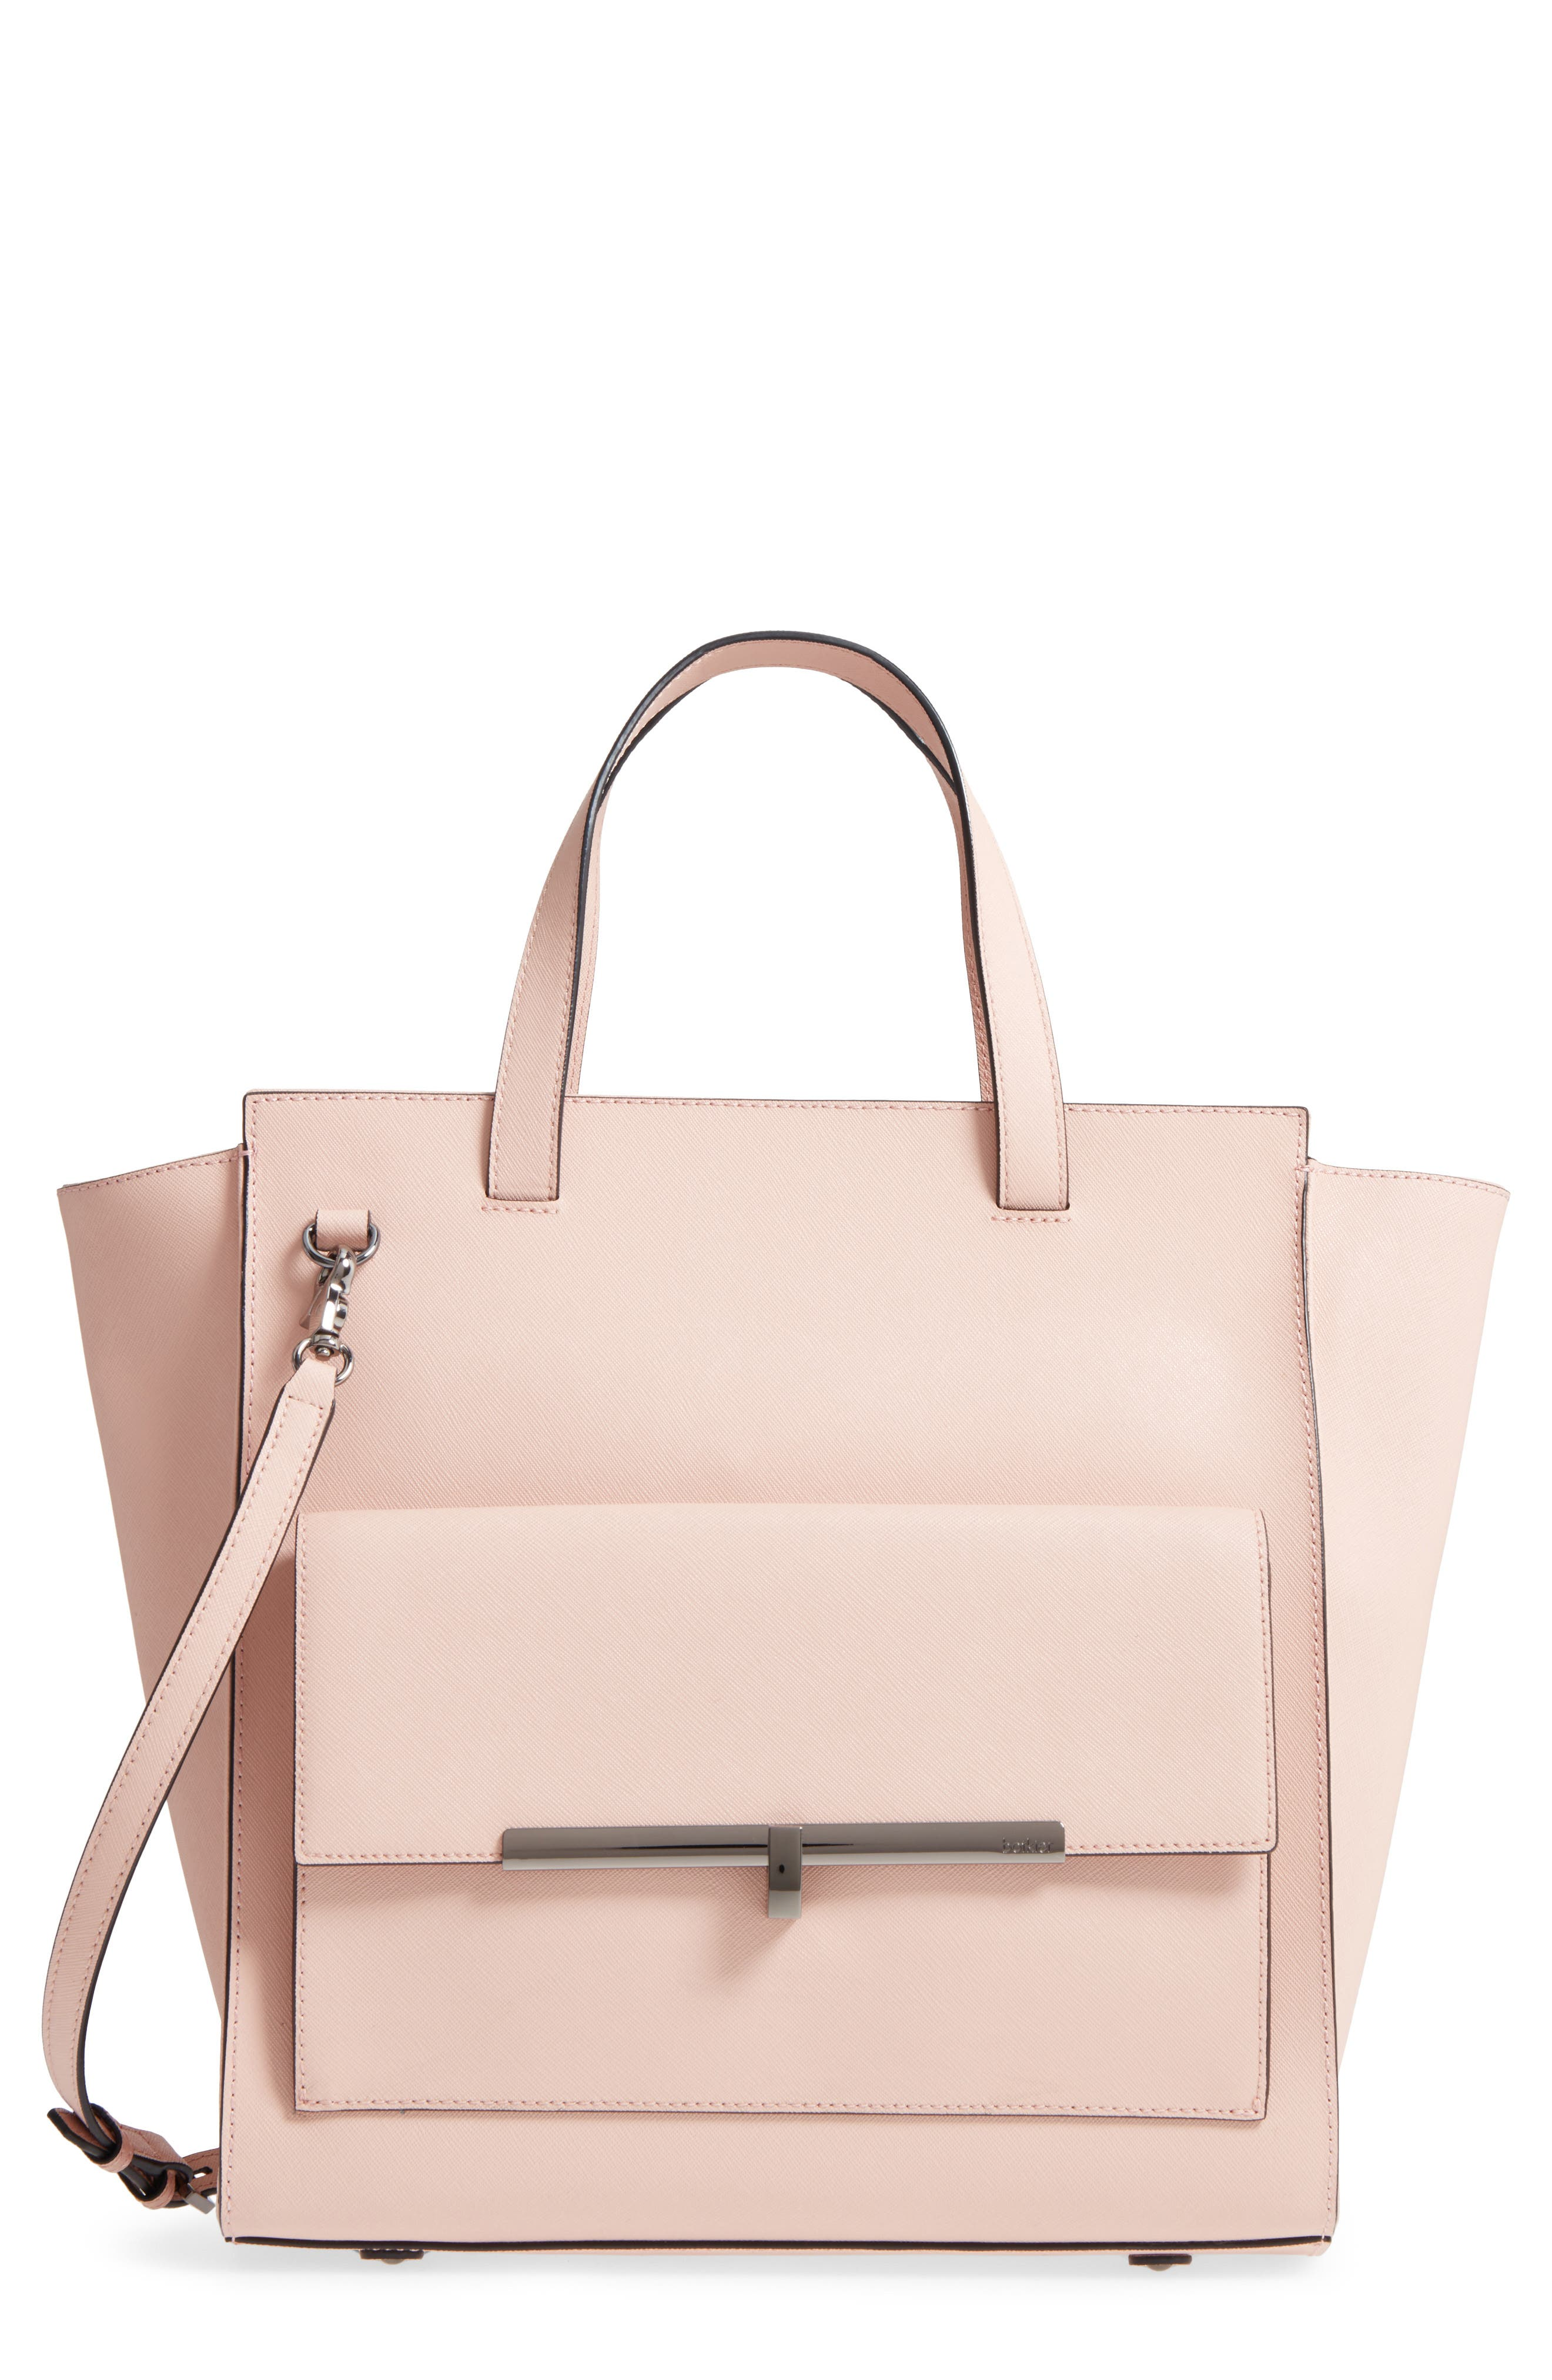 Jagger Leather Tote,                             Main thumbnail 1, color,                             Blush